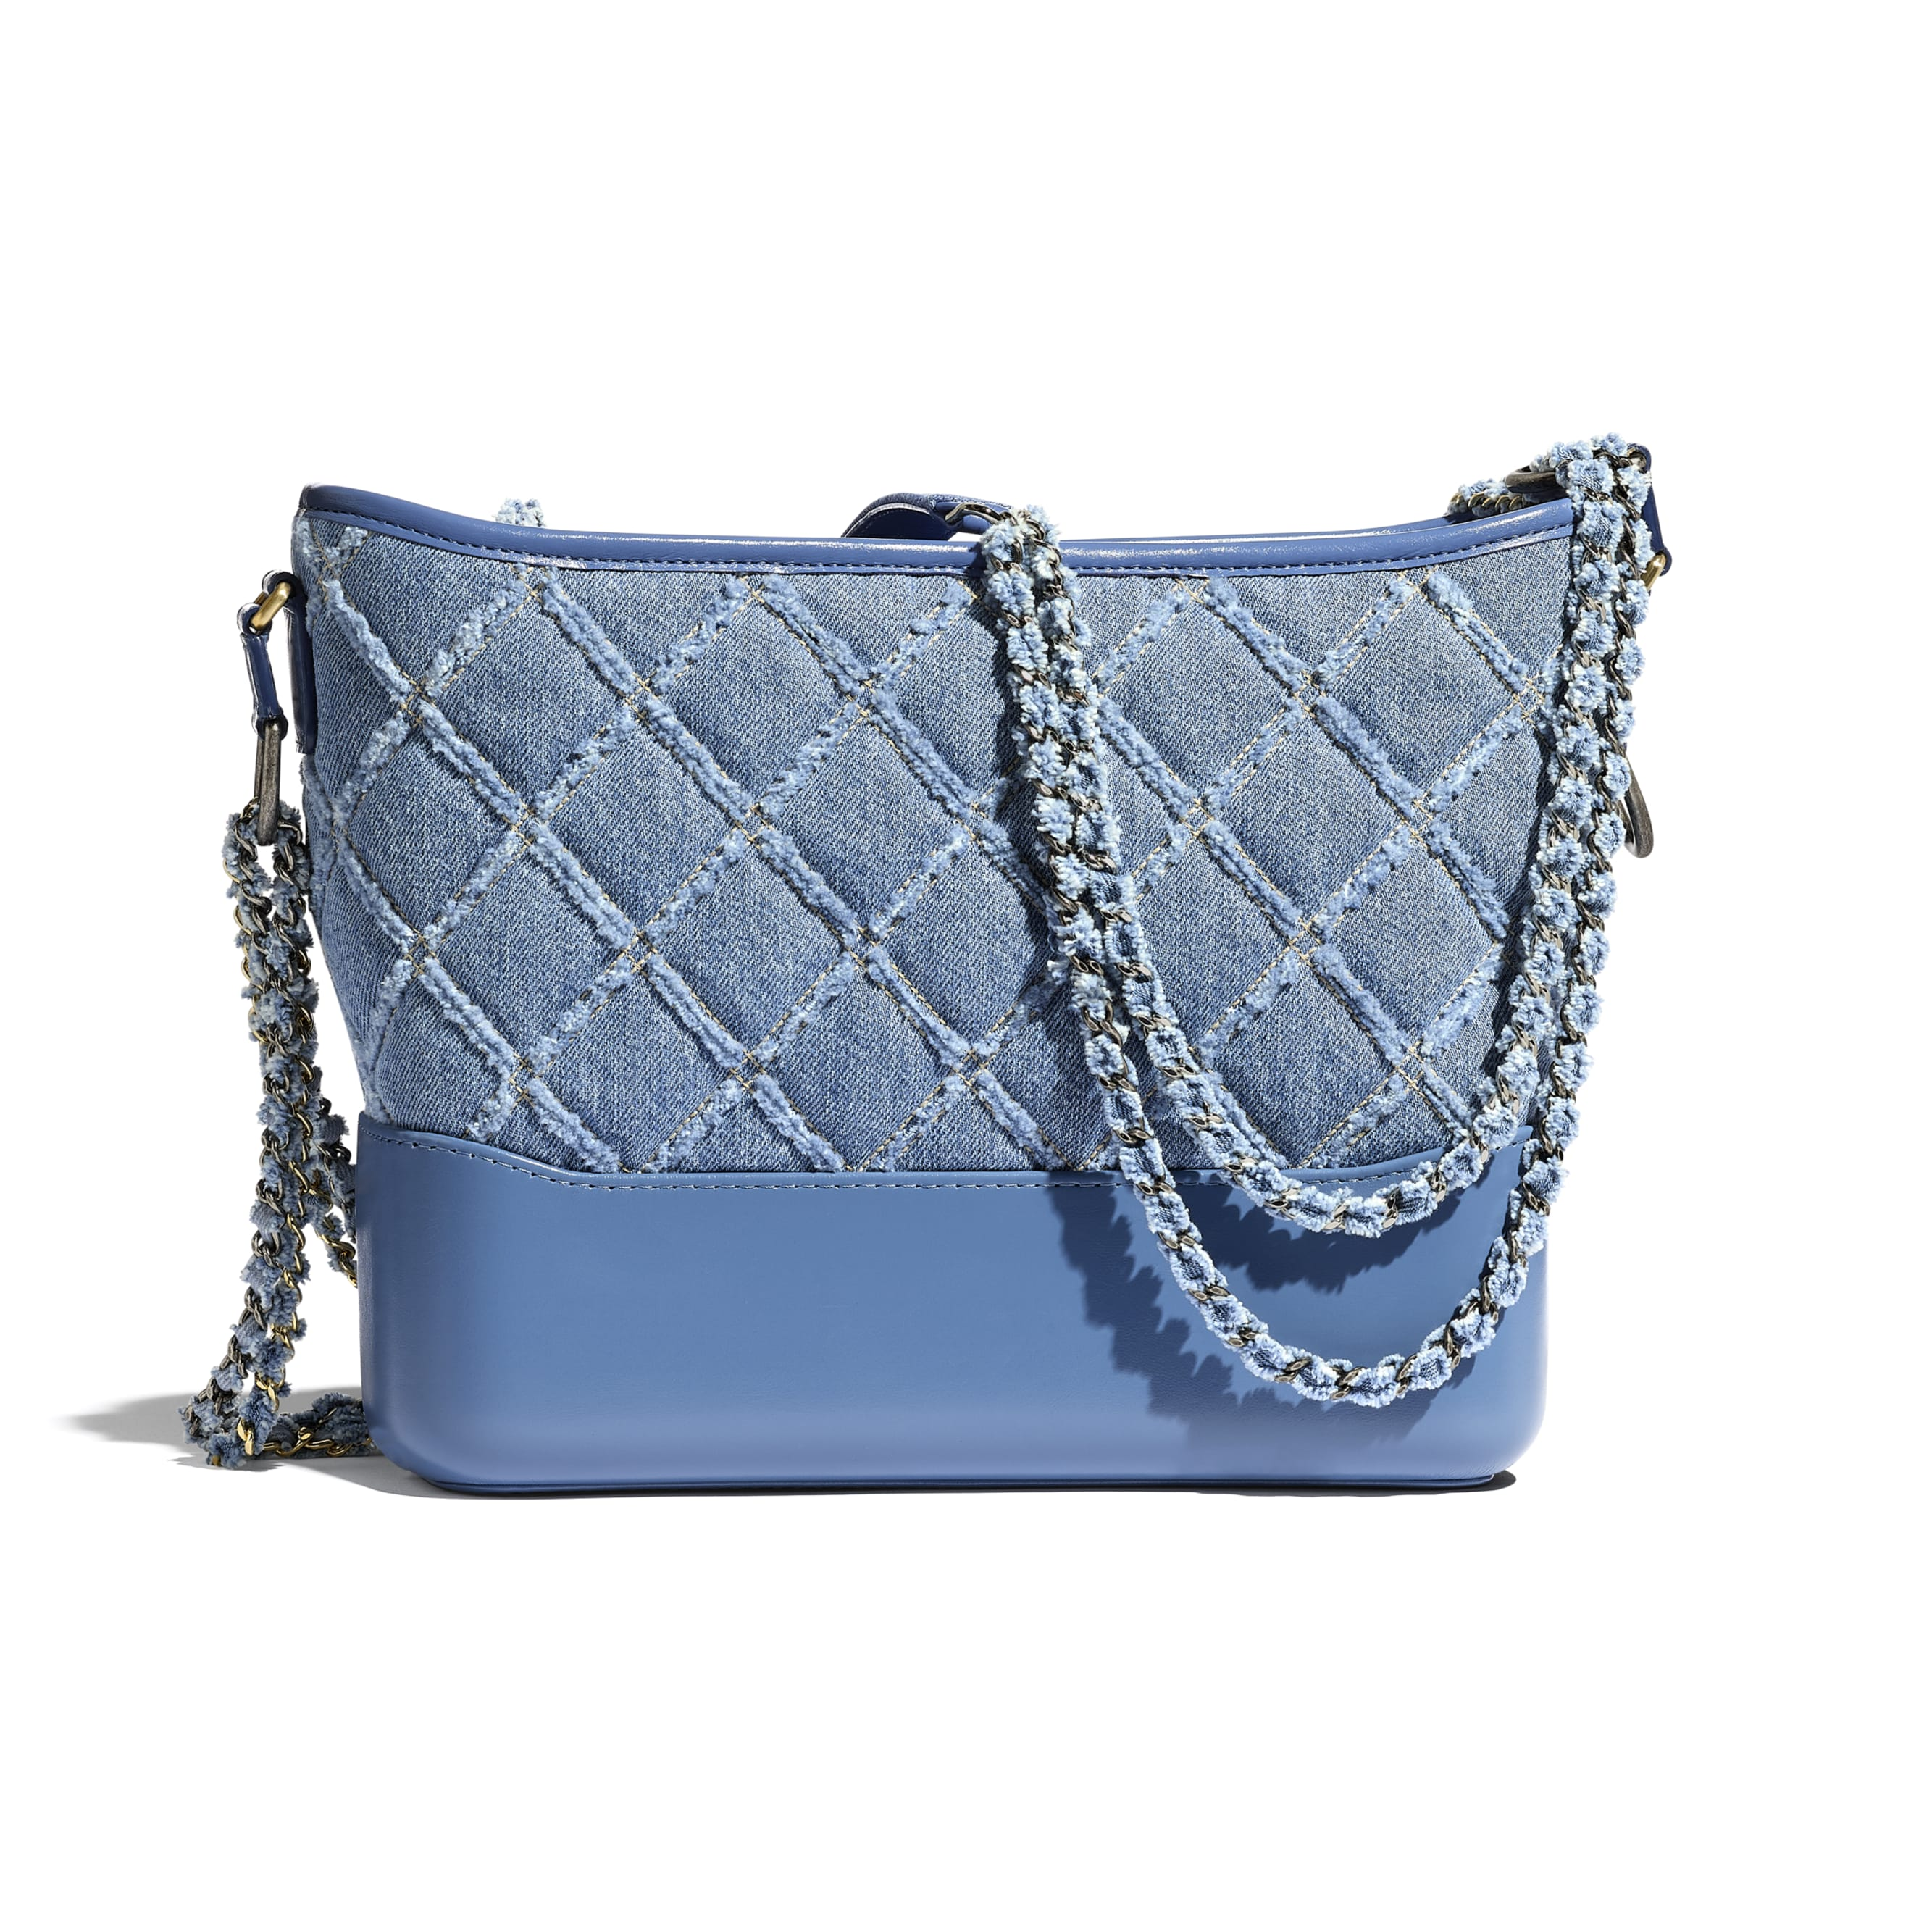 CHANEL'S GABRIELLE Large Hobo Bag - Blue - Denim, Calfskin, Gold-Tone, Silver-Tone & Ruthenium-Finish Metal - CHANEL - Alternative view - see standard sized version